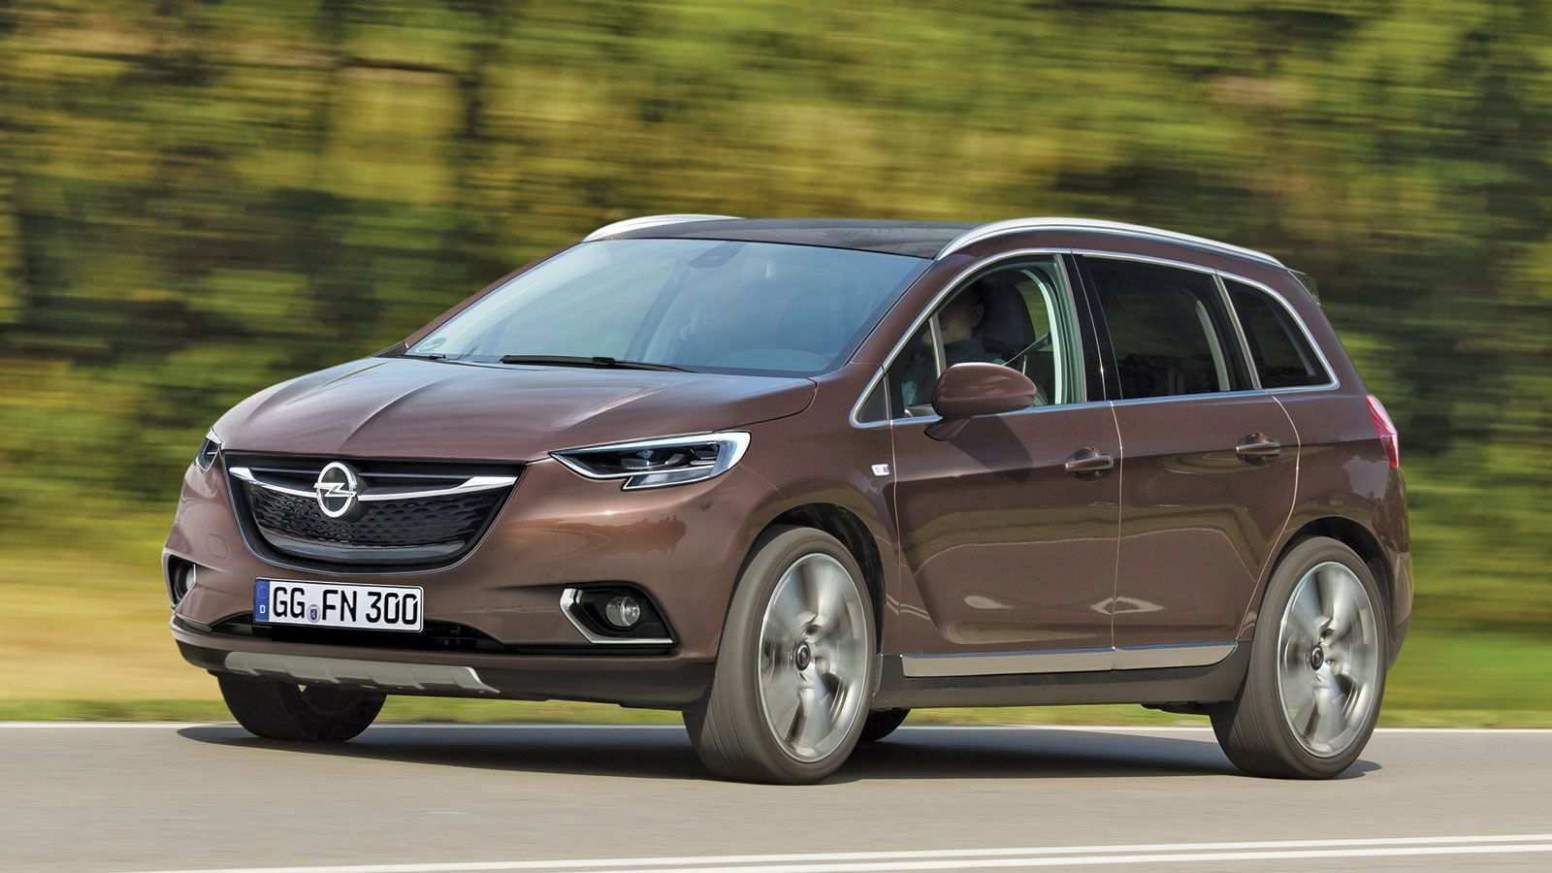 8 Best Review Suv Opel 8 History for Suv Opel 8 - Car ..